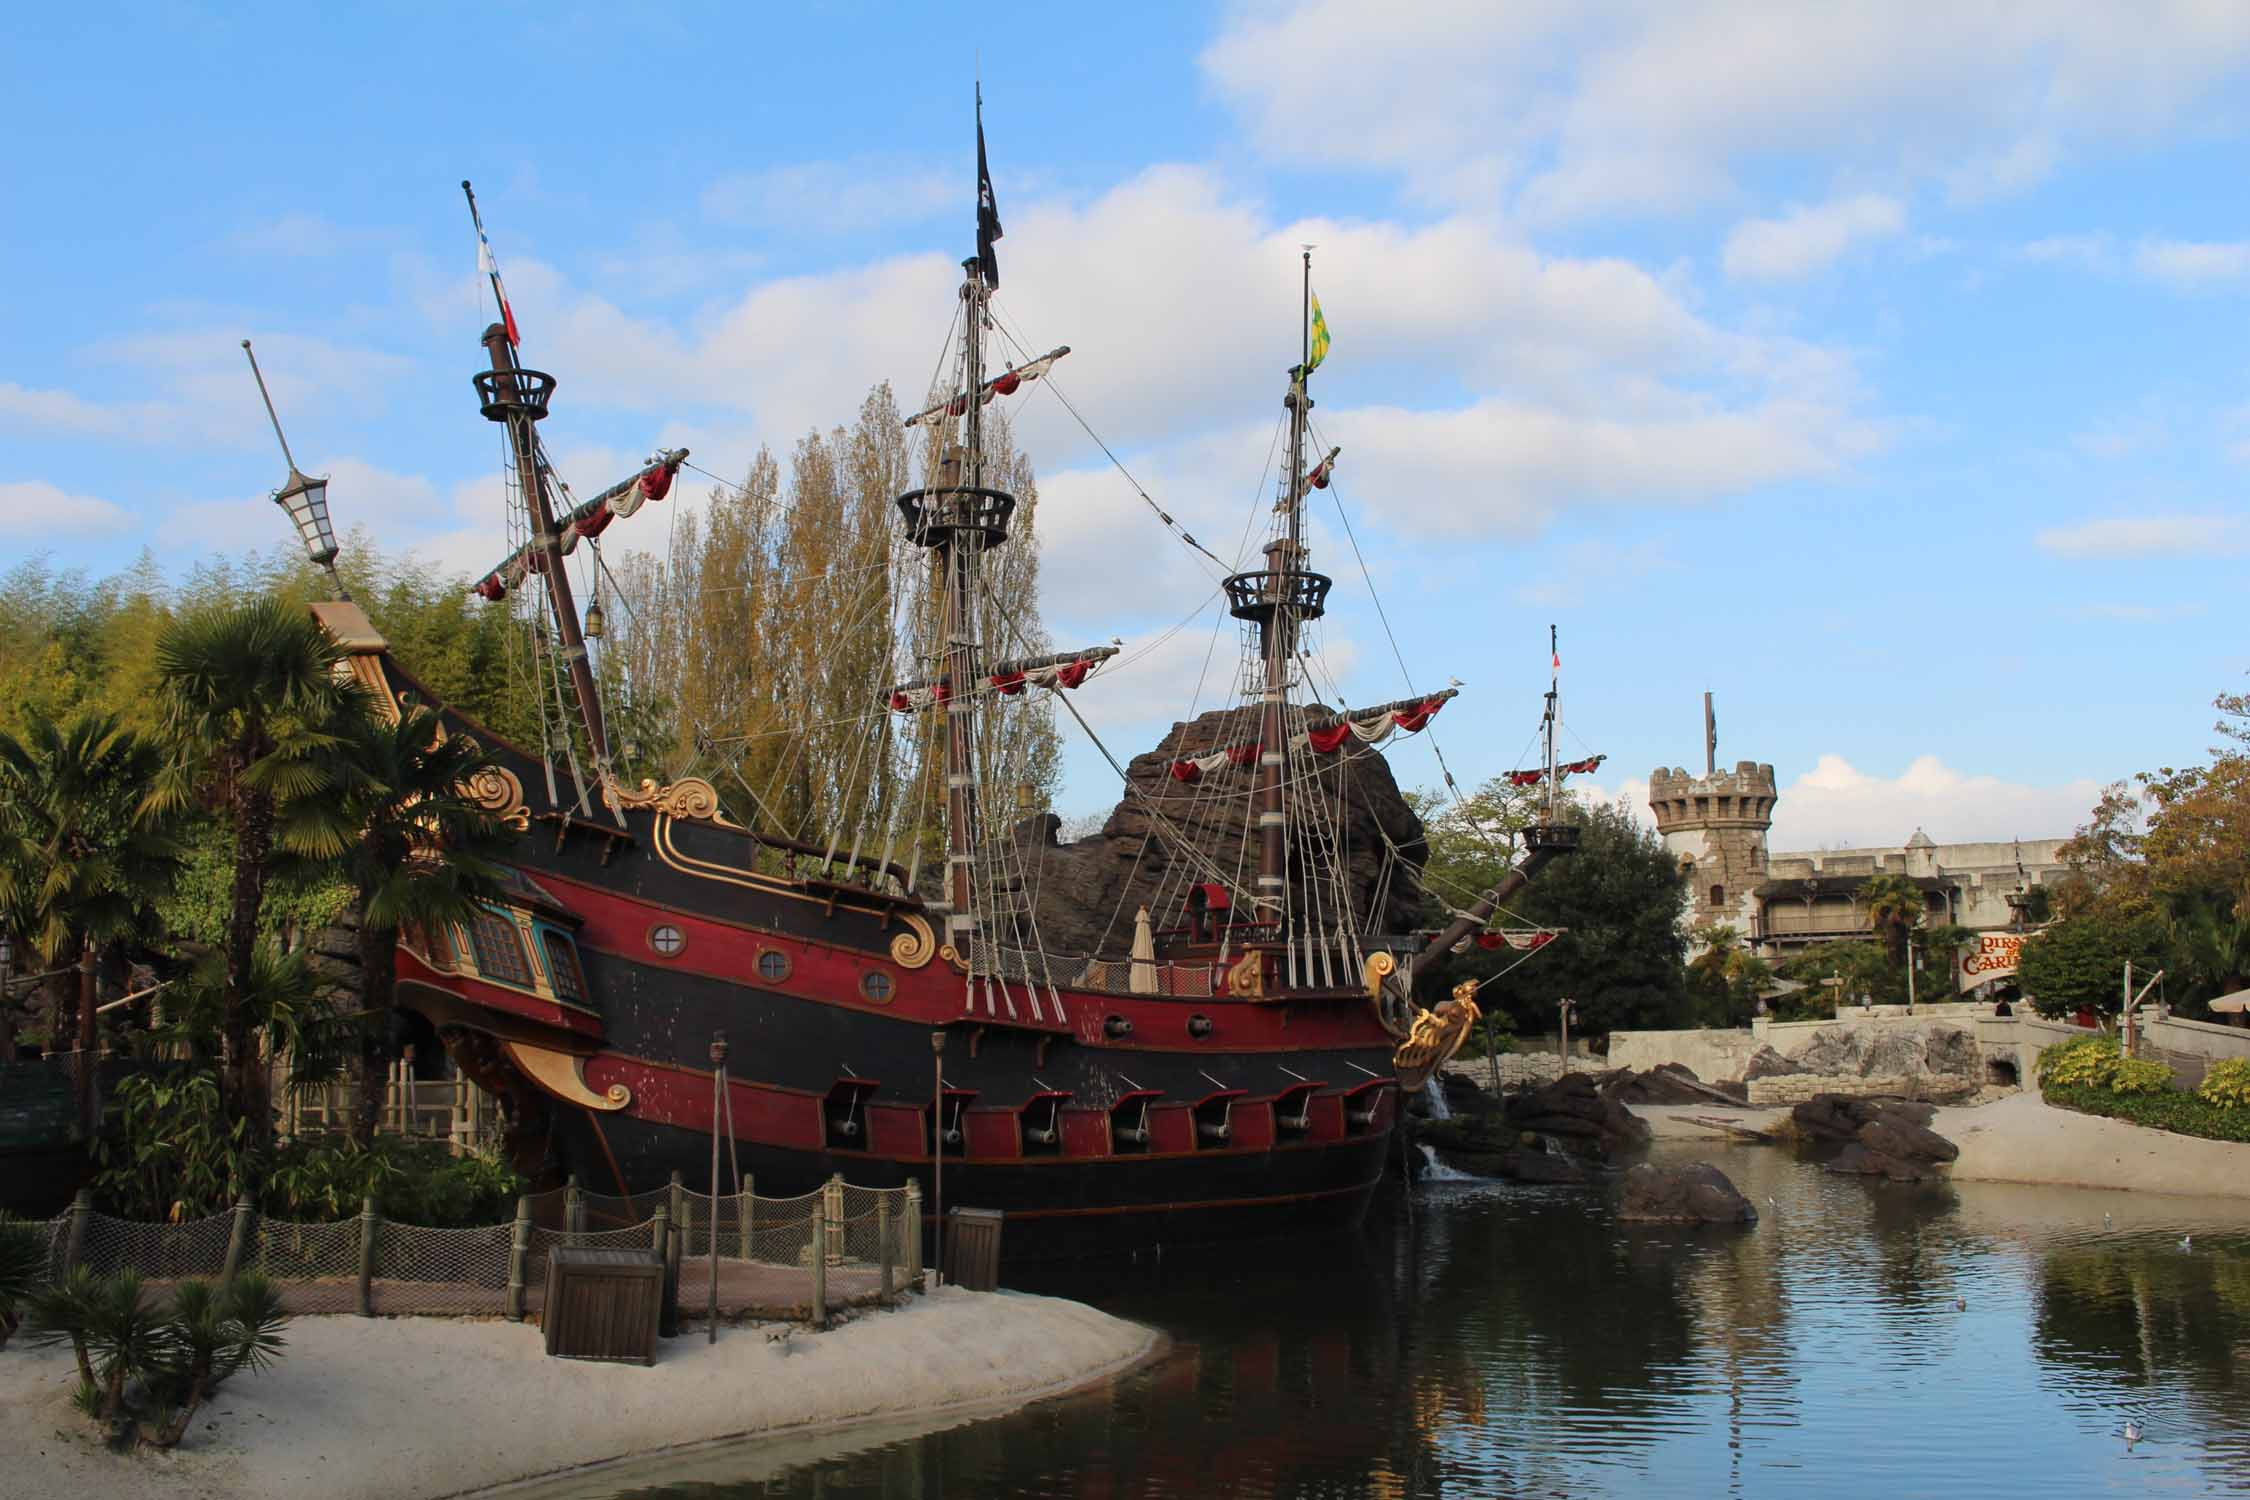 Disneyland Paris, Piratas del Caribe